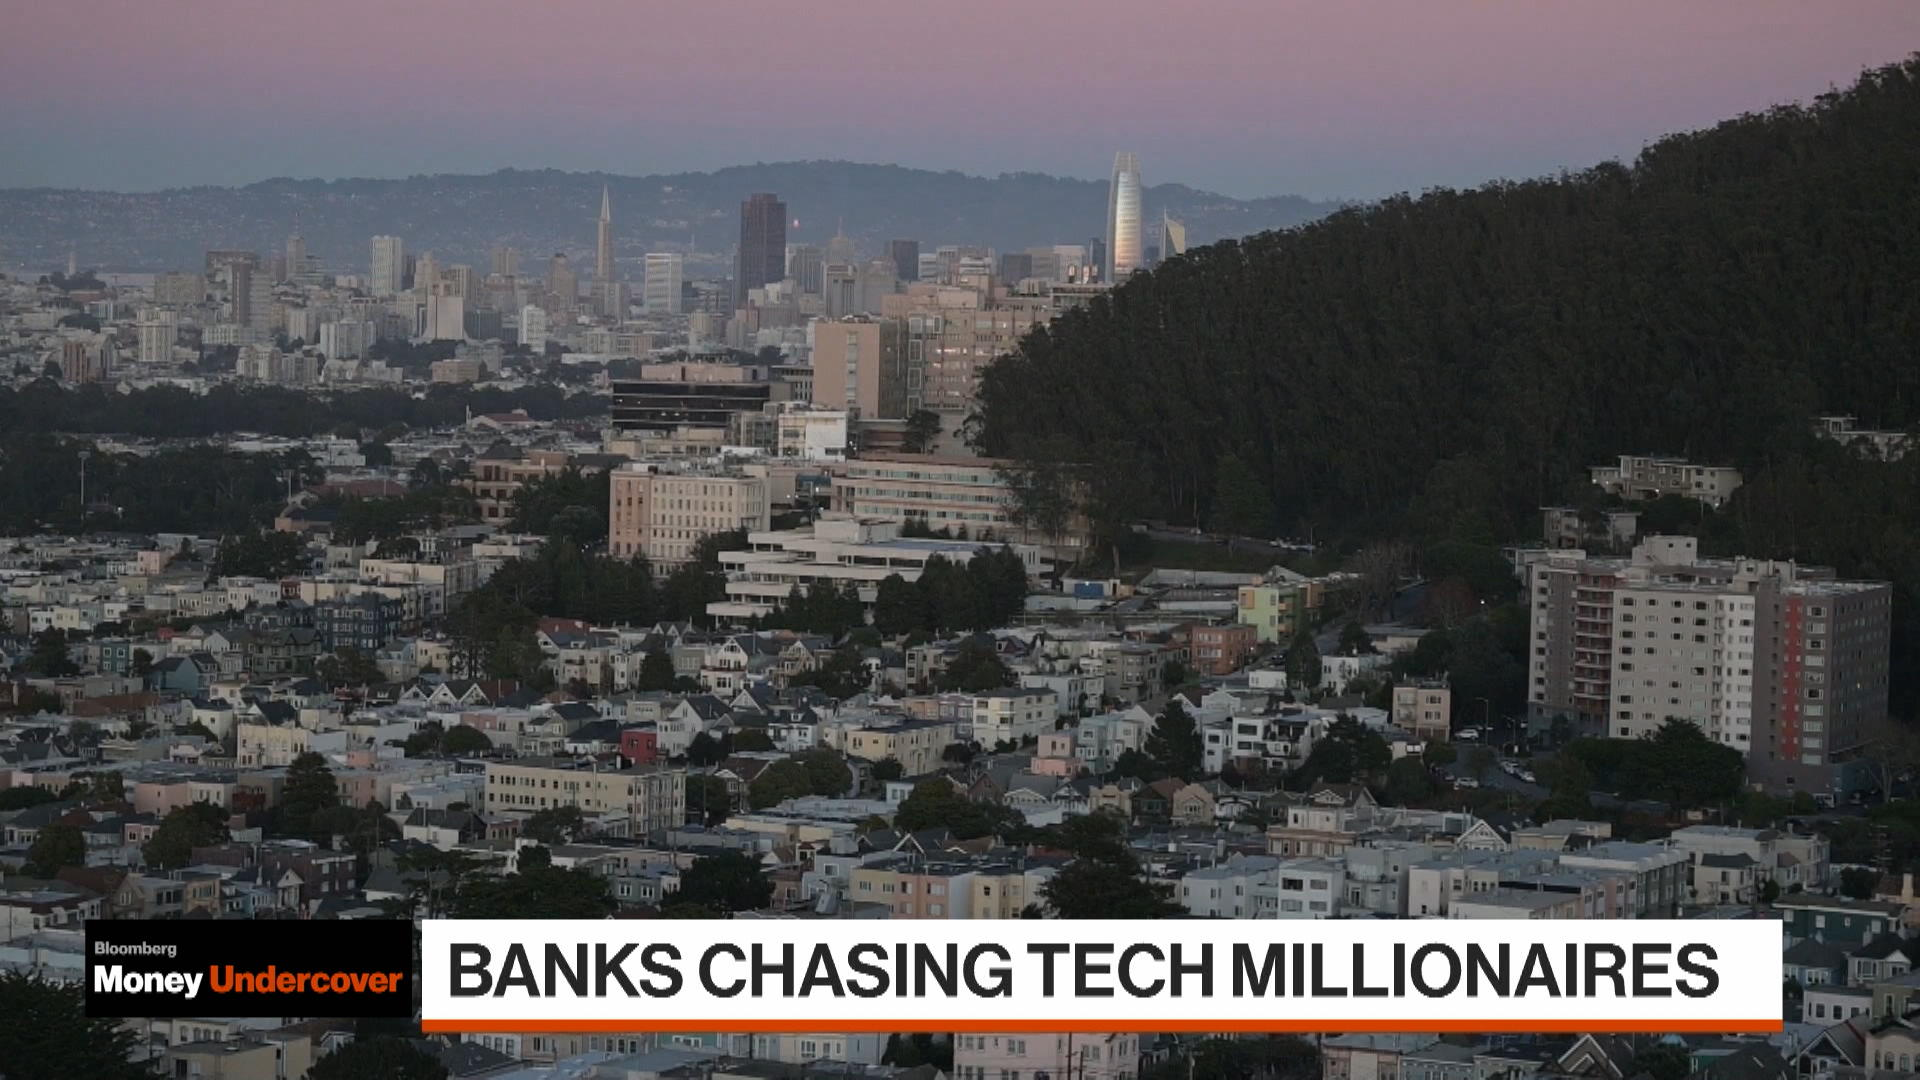 Wall Street Battles Upstarts in Hunt for Silicon Valley Rich